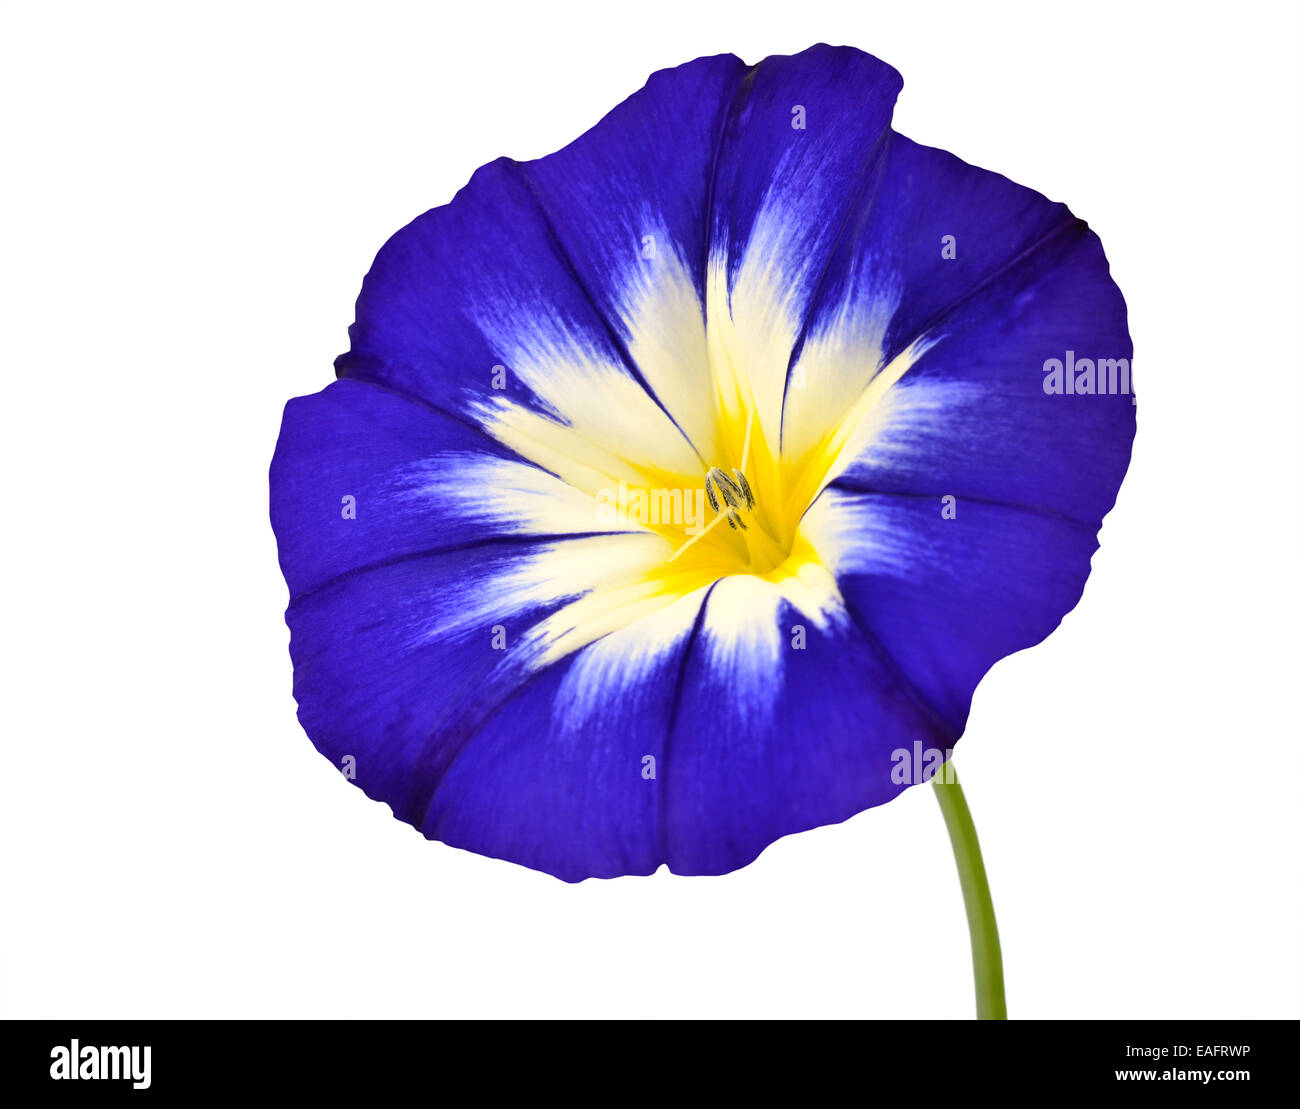 Purple star shaped flower stock photos purple star shaped flower blue flower with white yellow star shaped center with green stick isolated on white background mightylinksfo